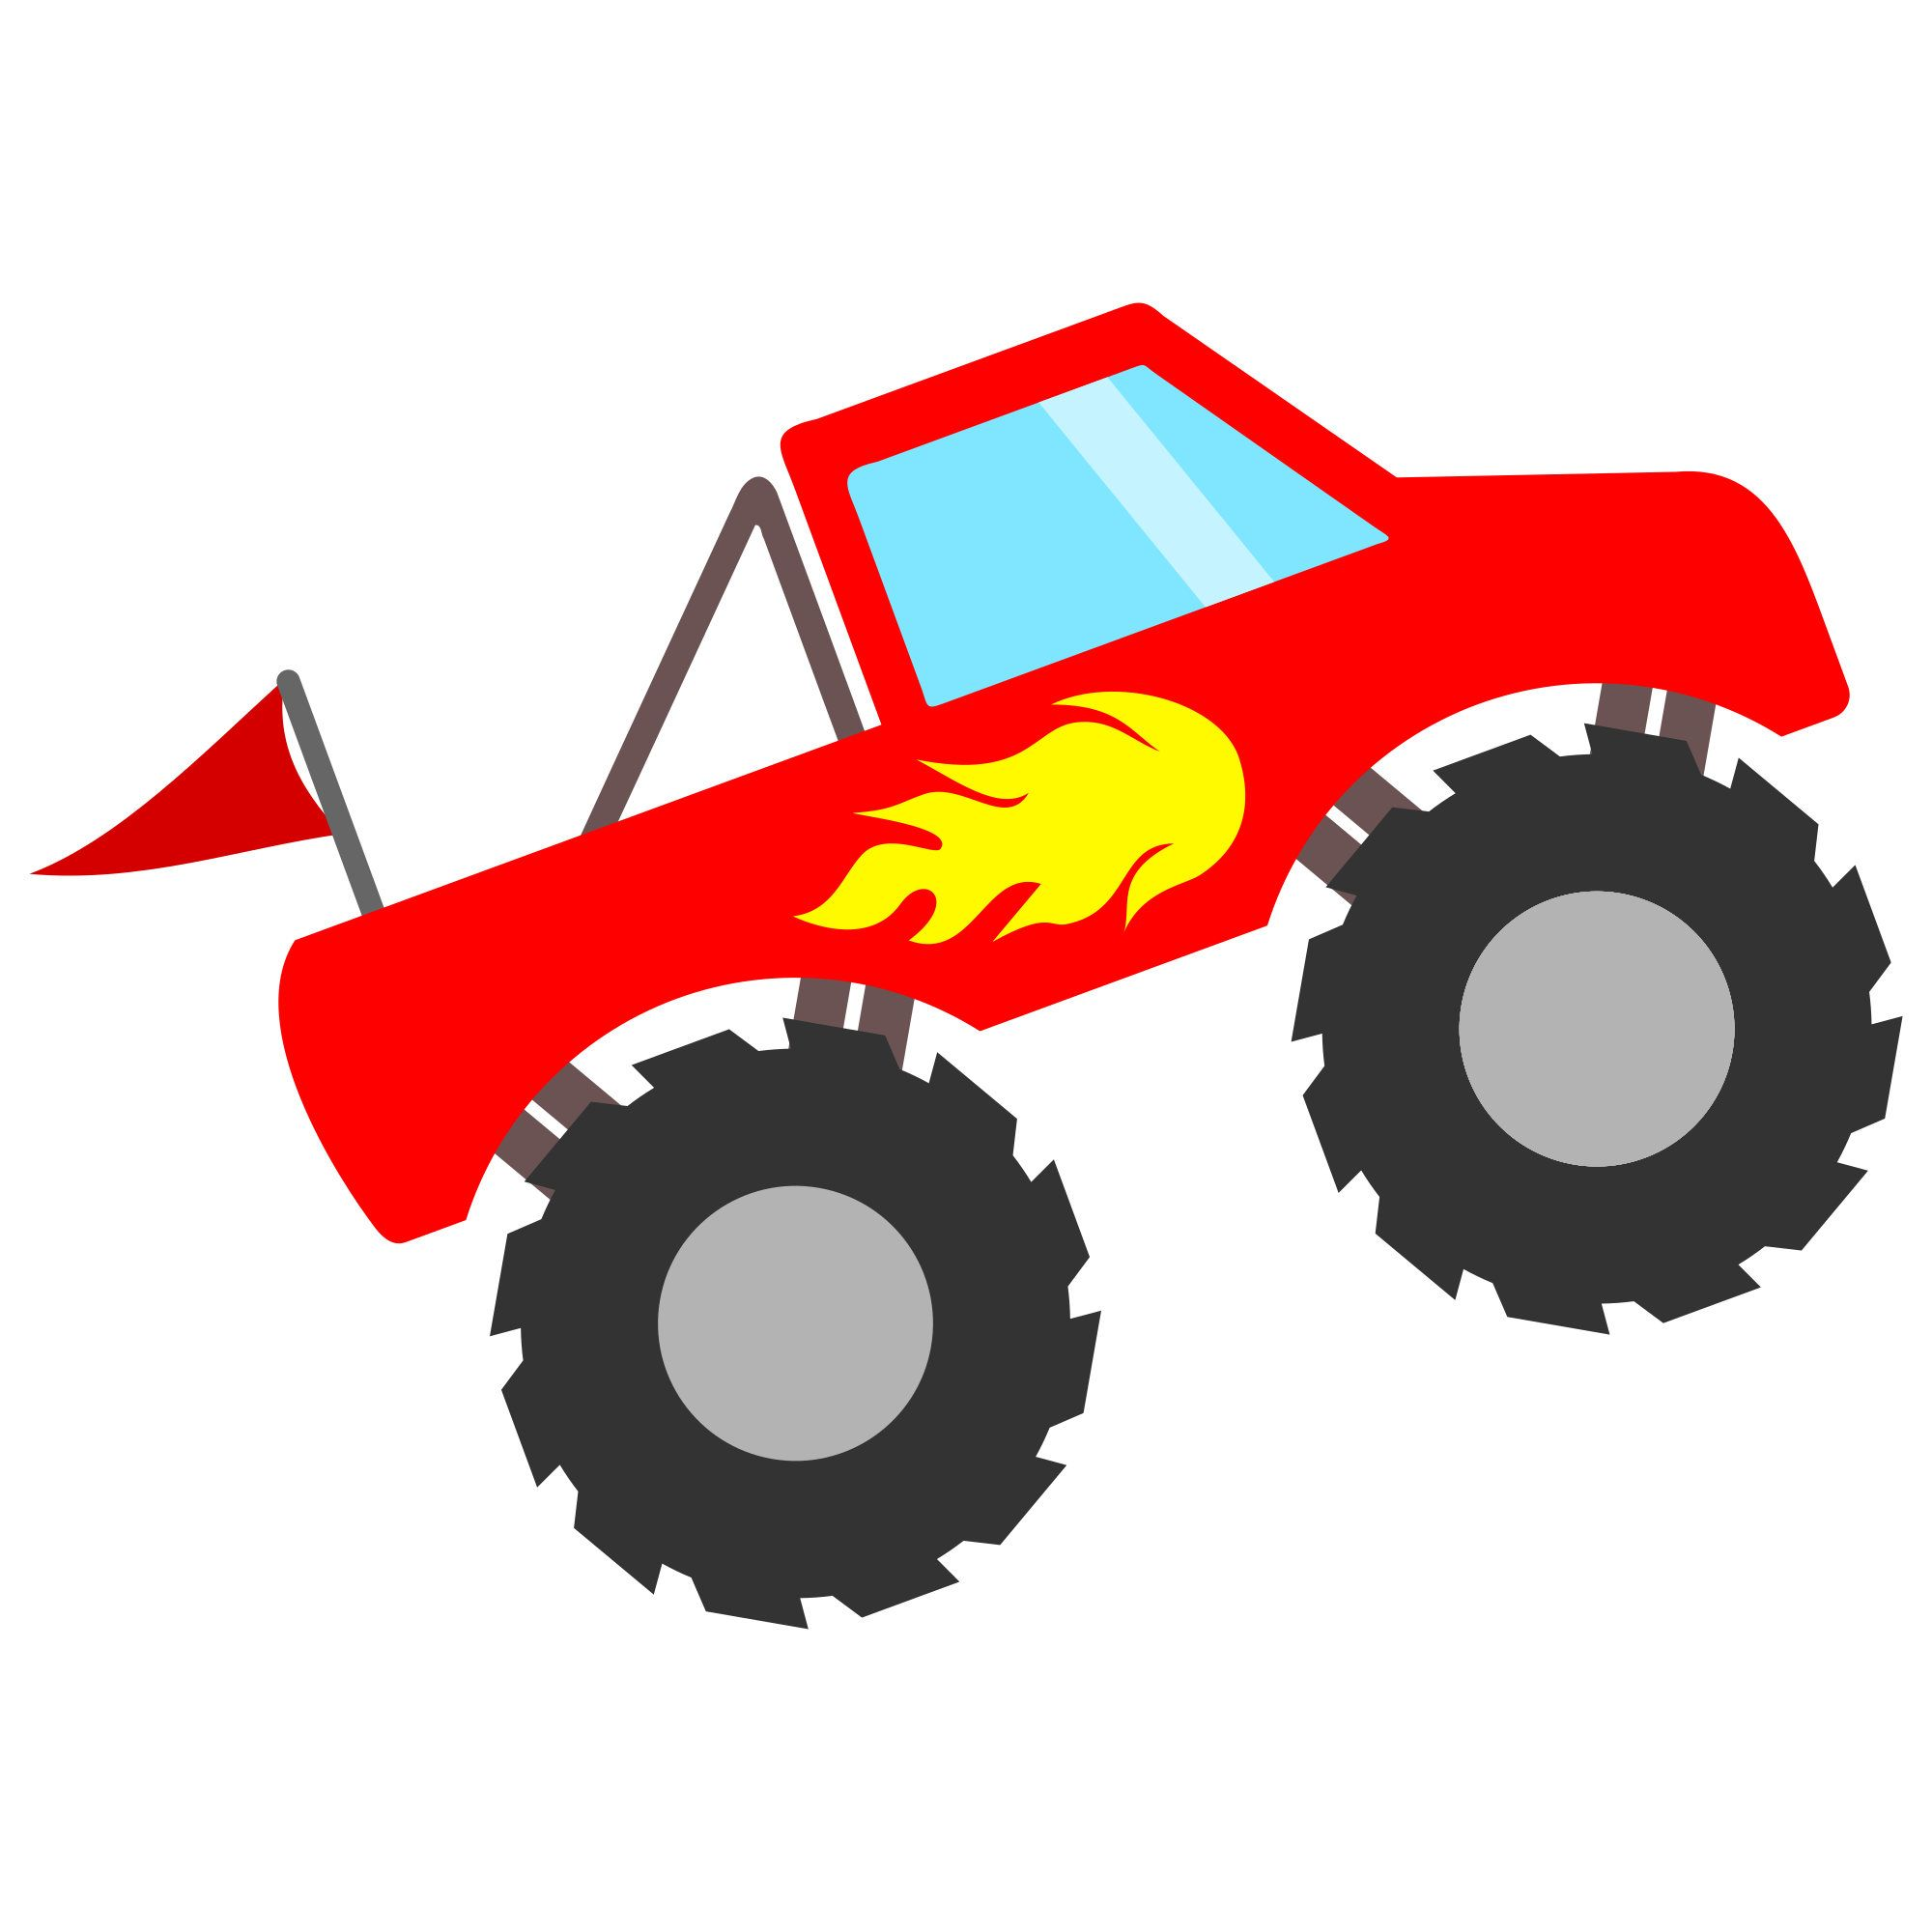 Truck with svg file. Flames clipart blaze and the monster machines